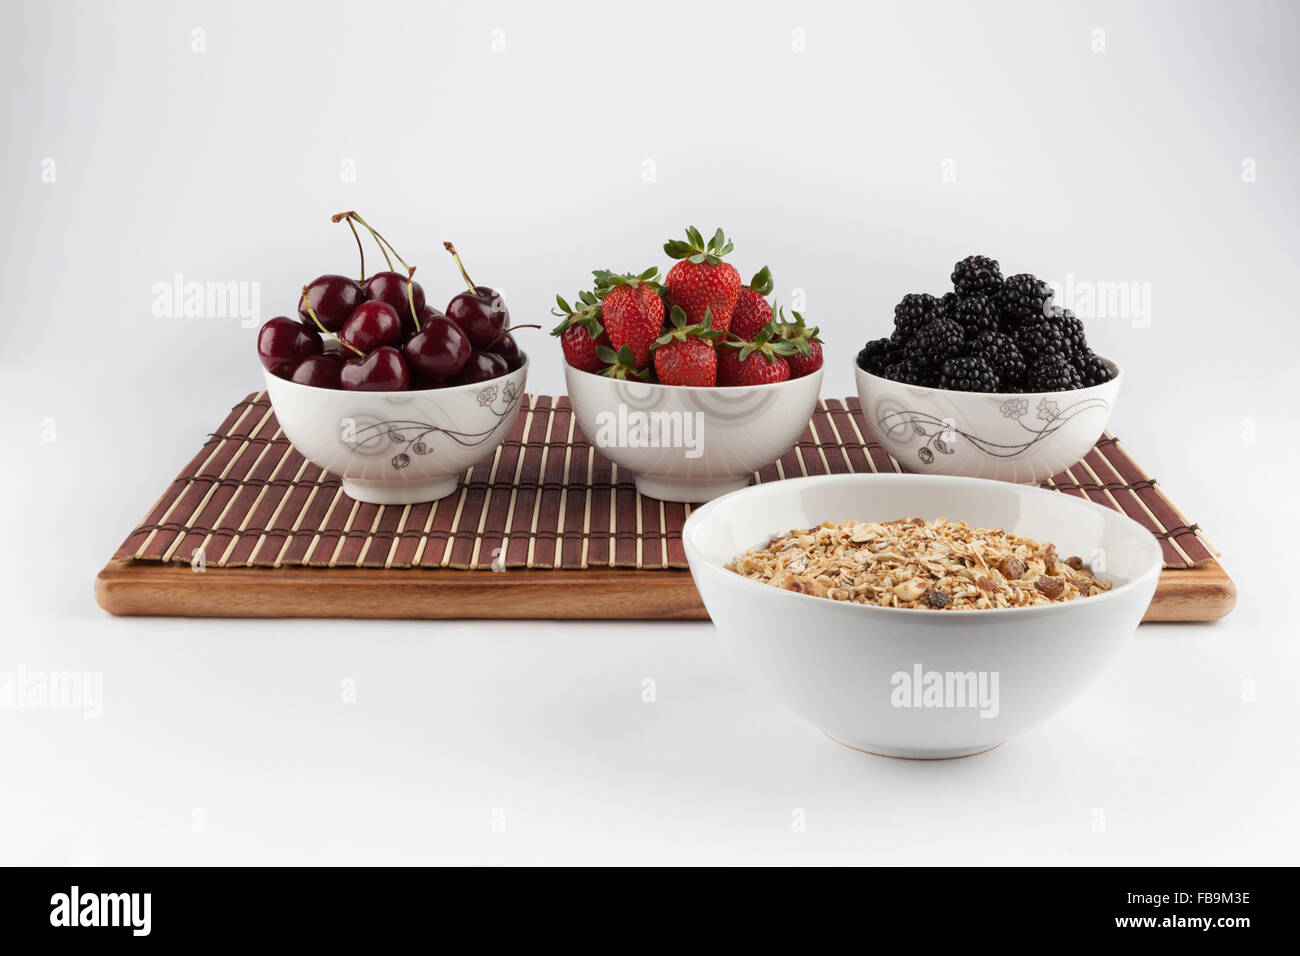 Homemade Granola and Cherries, Strawberries, and Blackberries in ceramic bowls on bamboo mat in the background Stock Photo